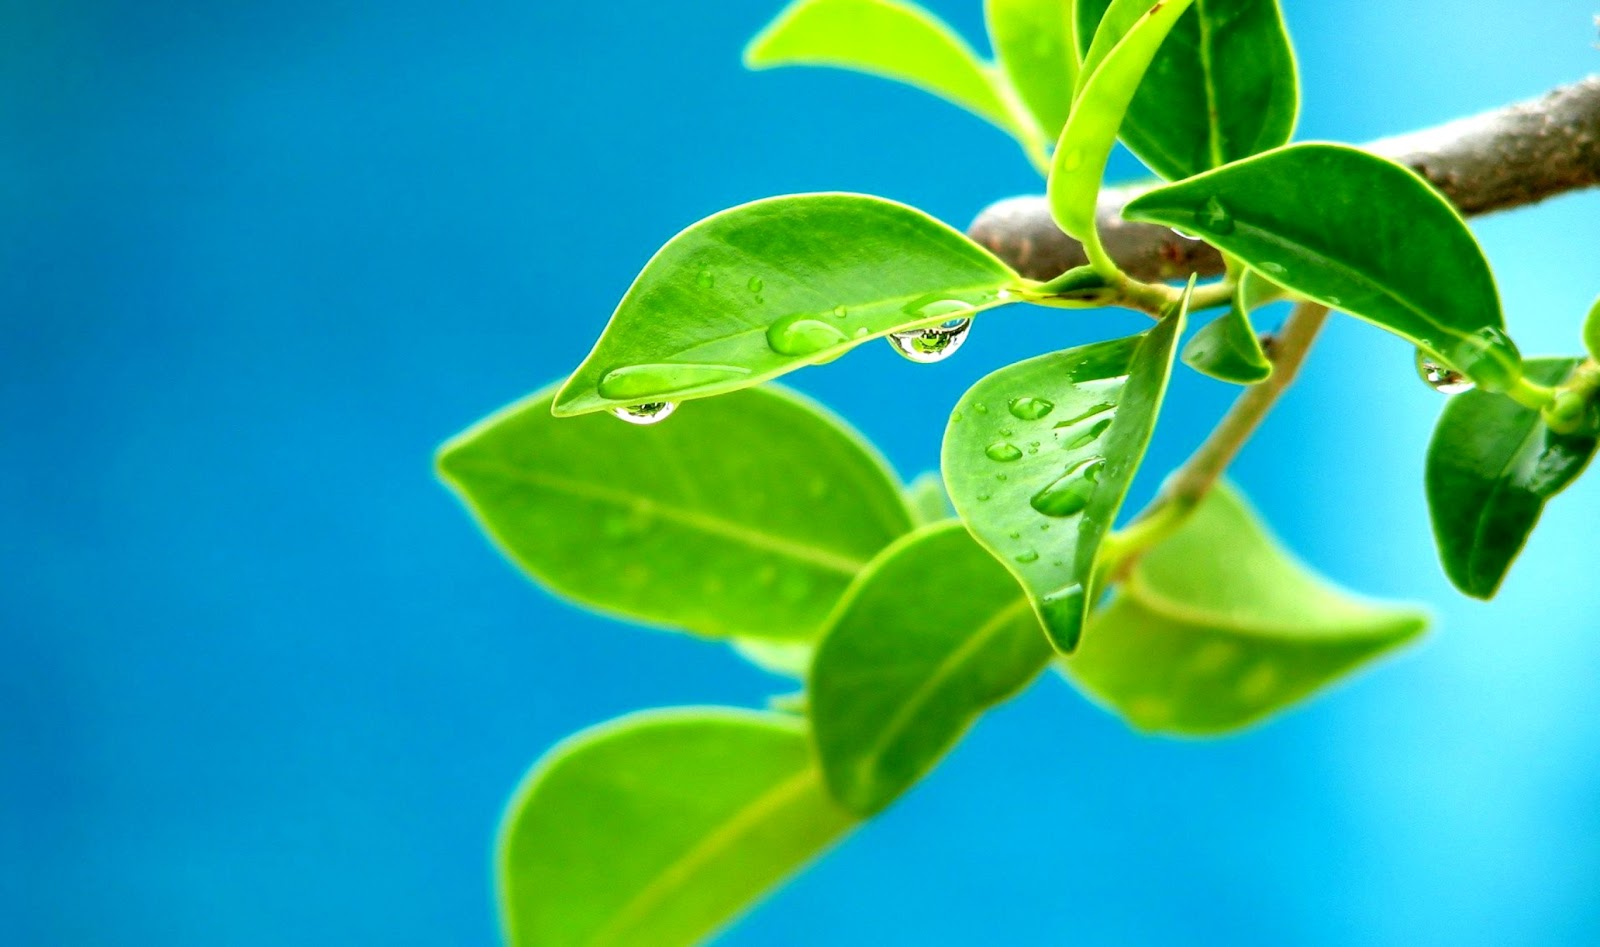 Tree Green Leaves Nature Hd Wallpaper Wallpapers Colorful